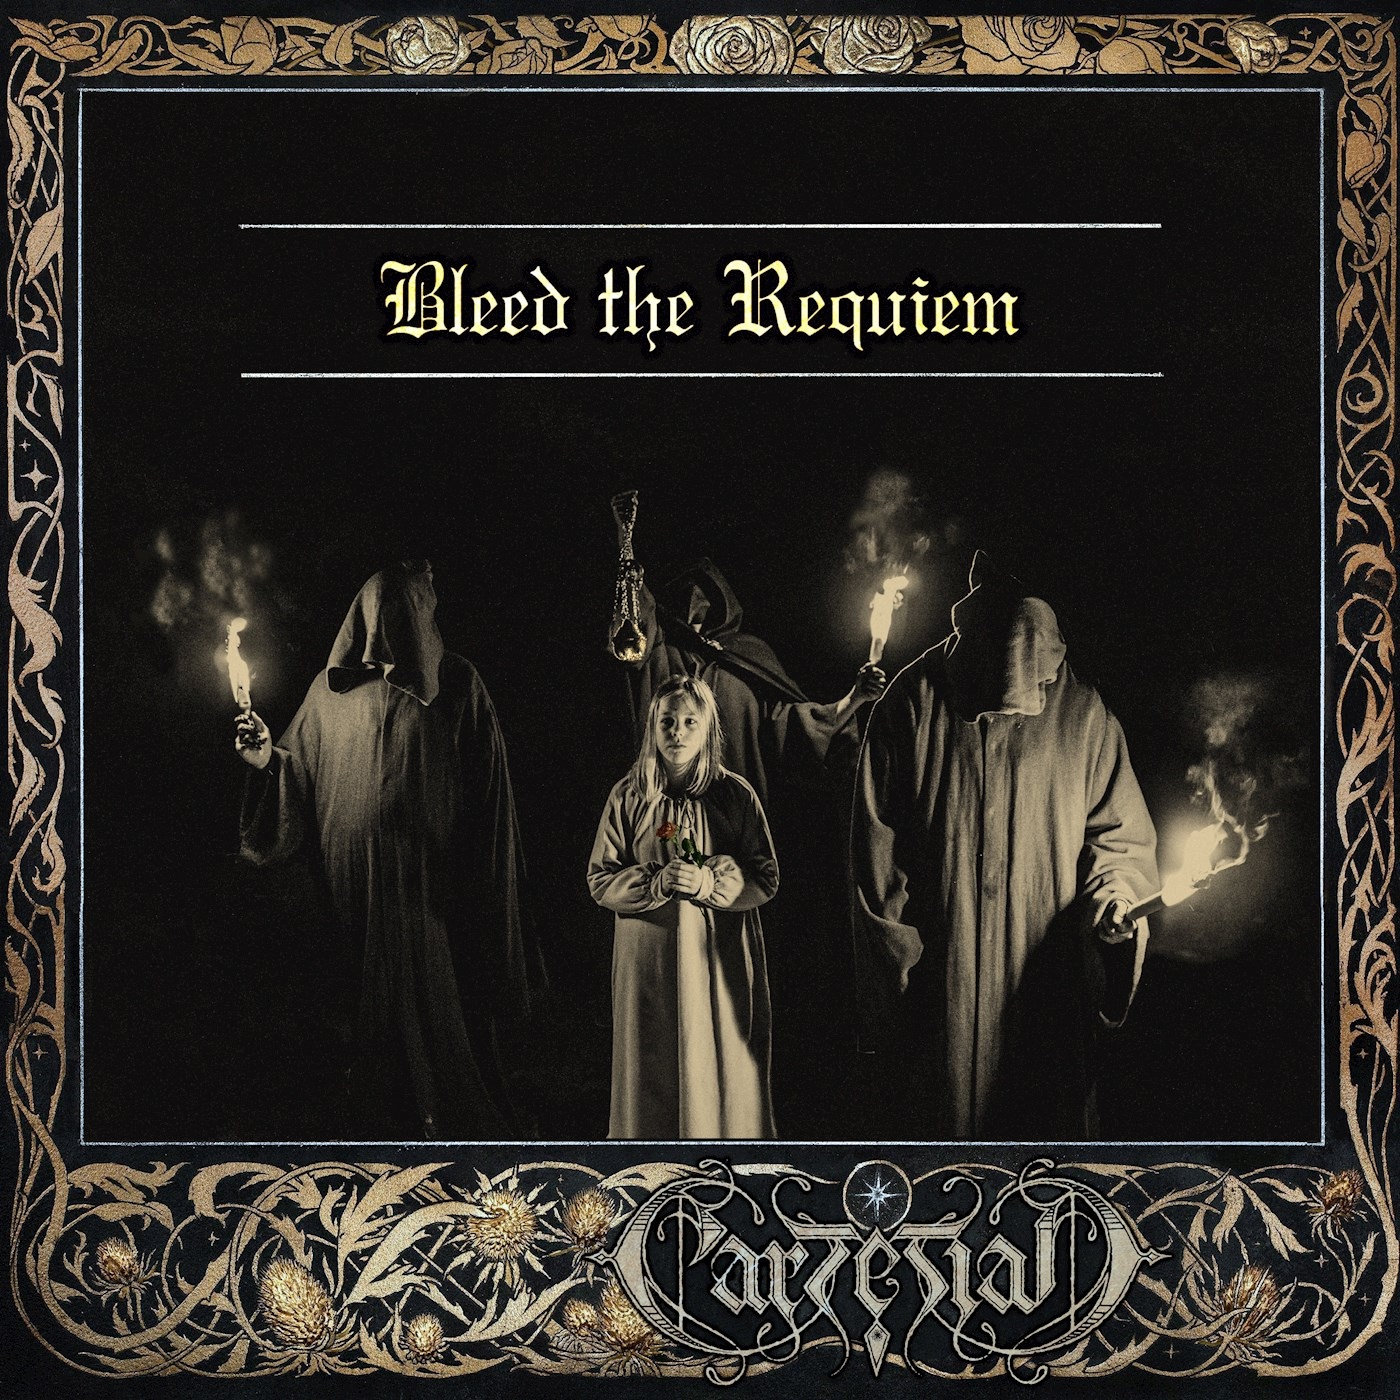 Cartesian - Bleed The Requiem [Single] (2018)